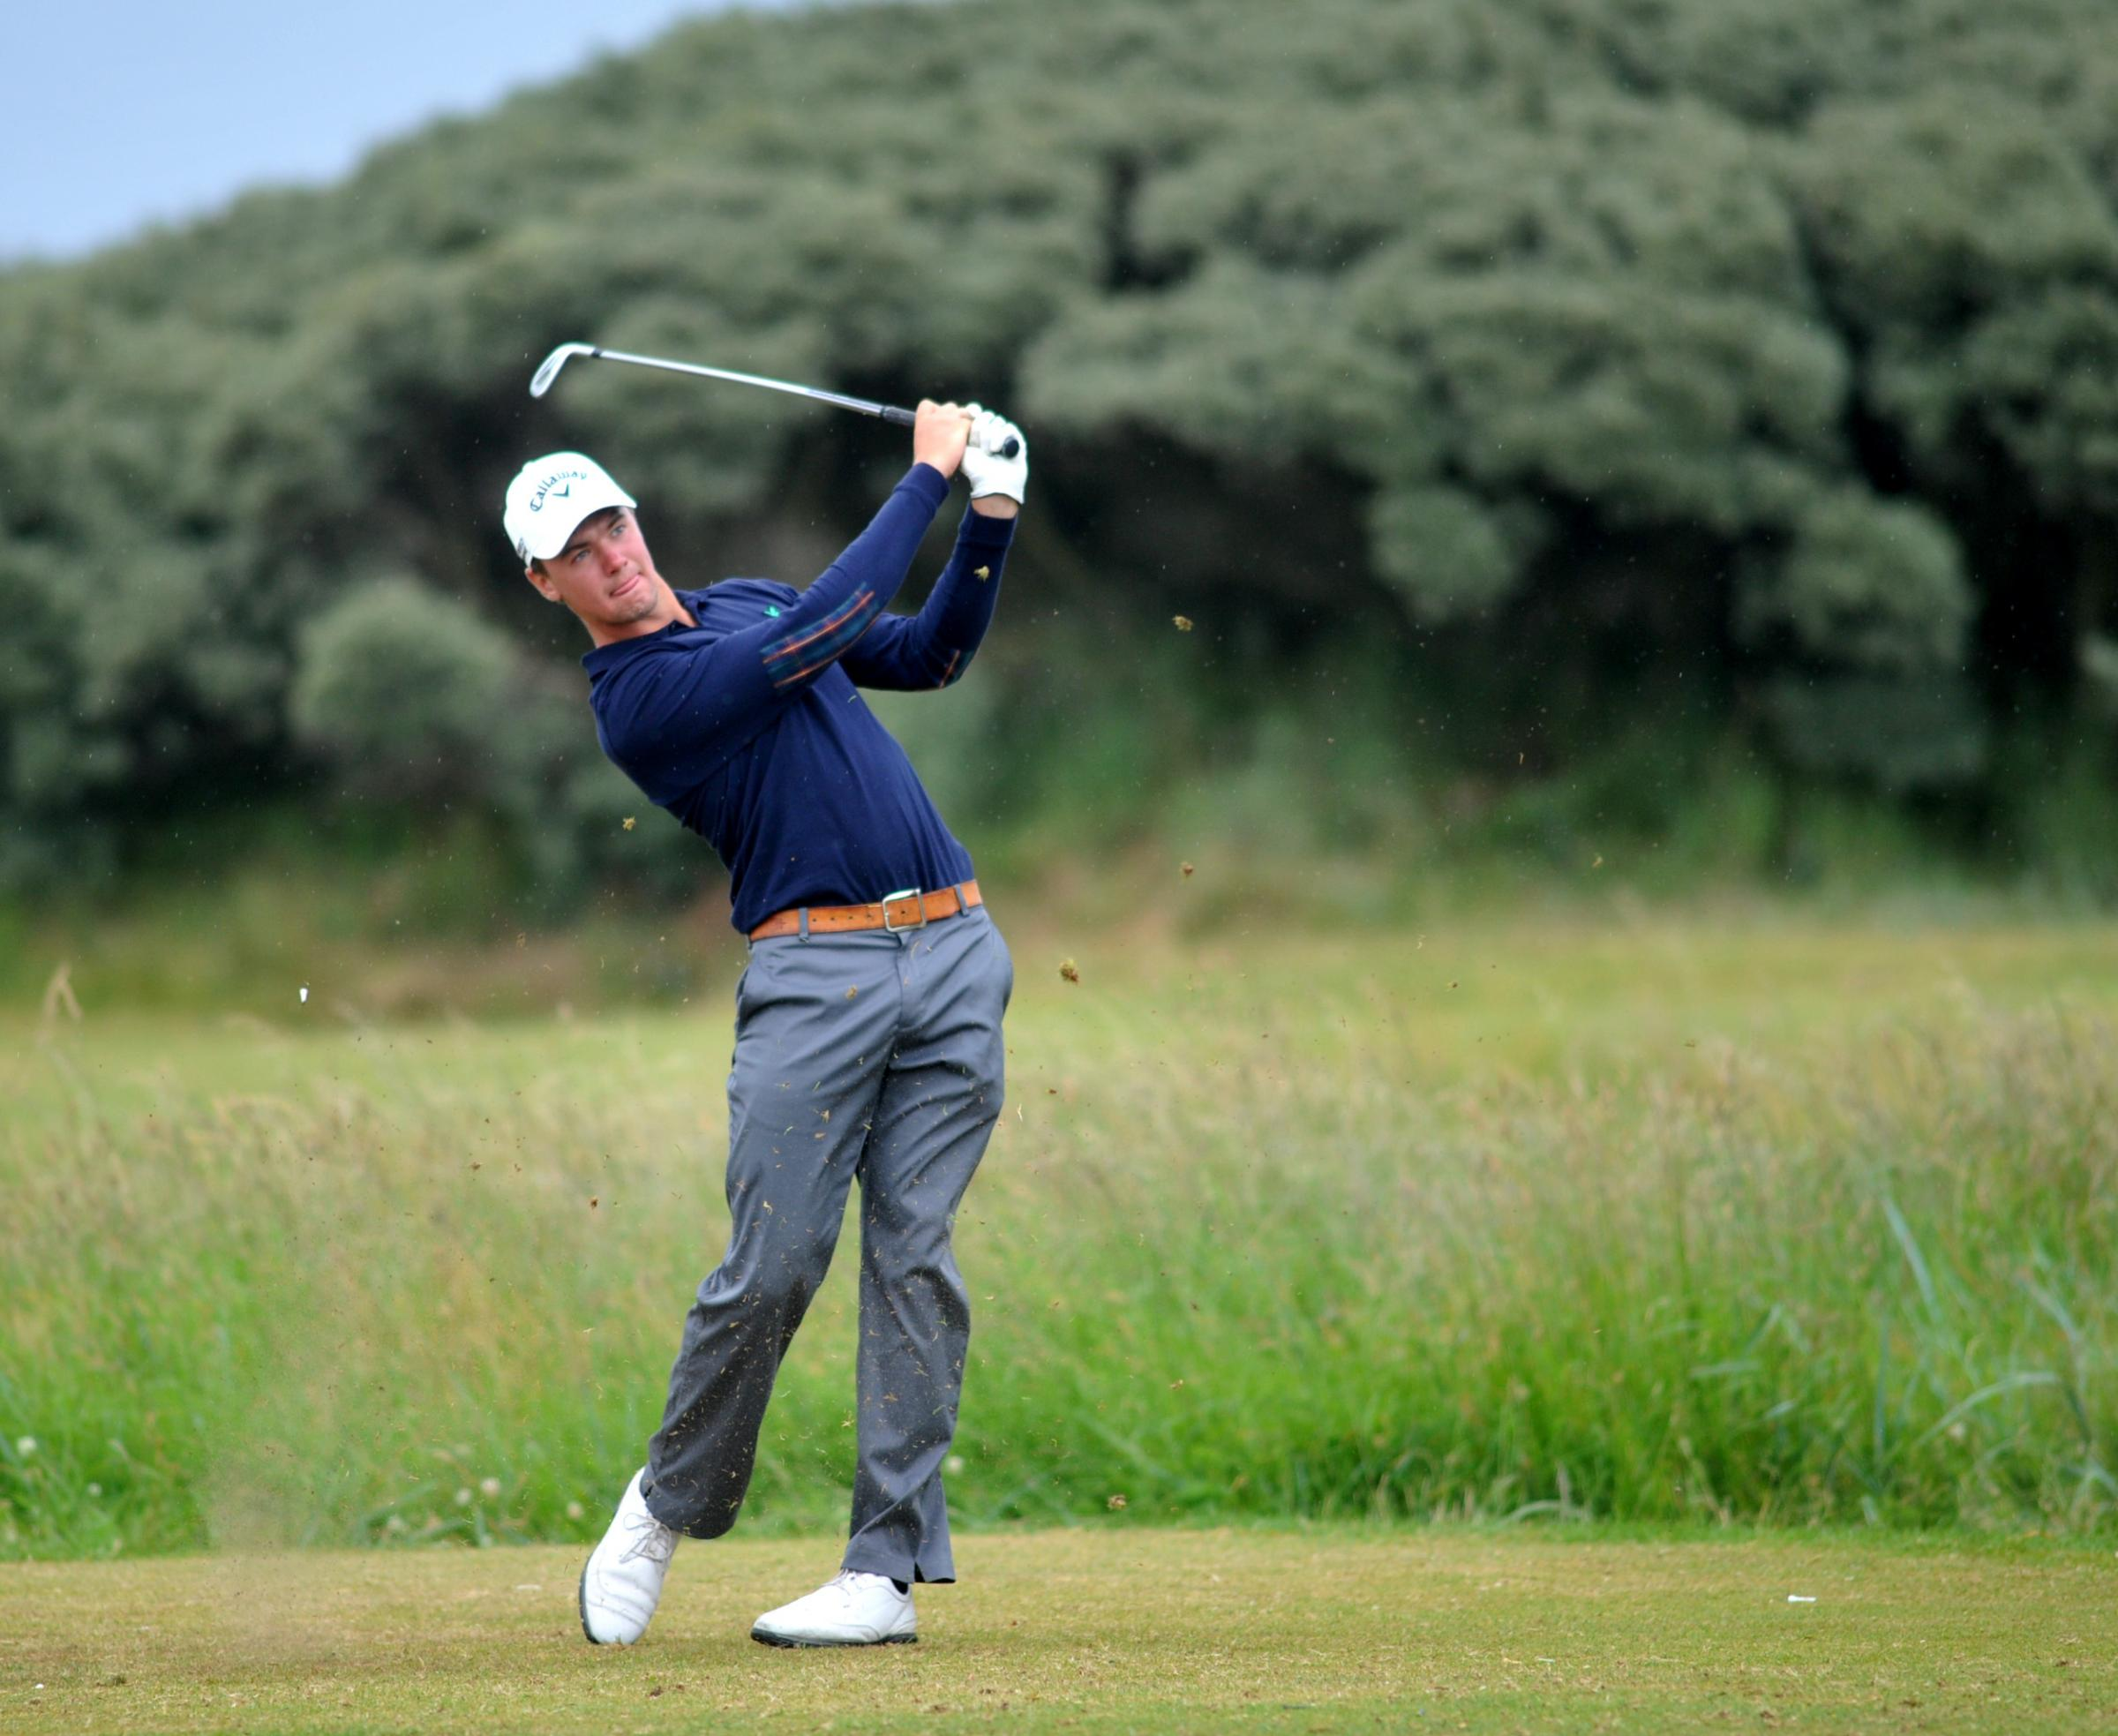 Just champion: Ben Stow on his way to Brabazon Trophy glory at Seaton Carew. Picture: Tom Collins